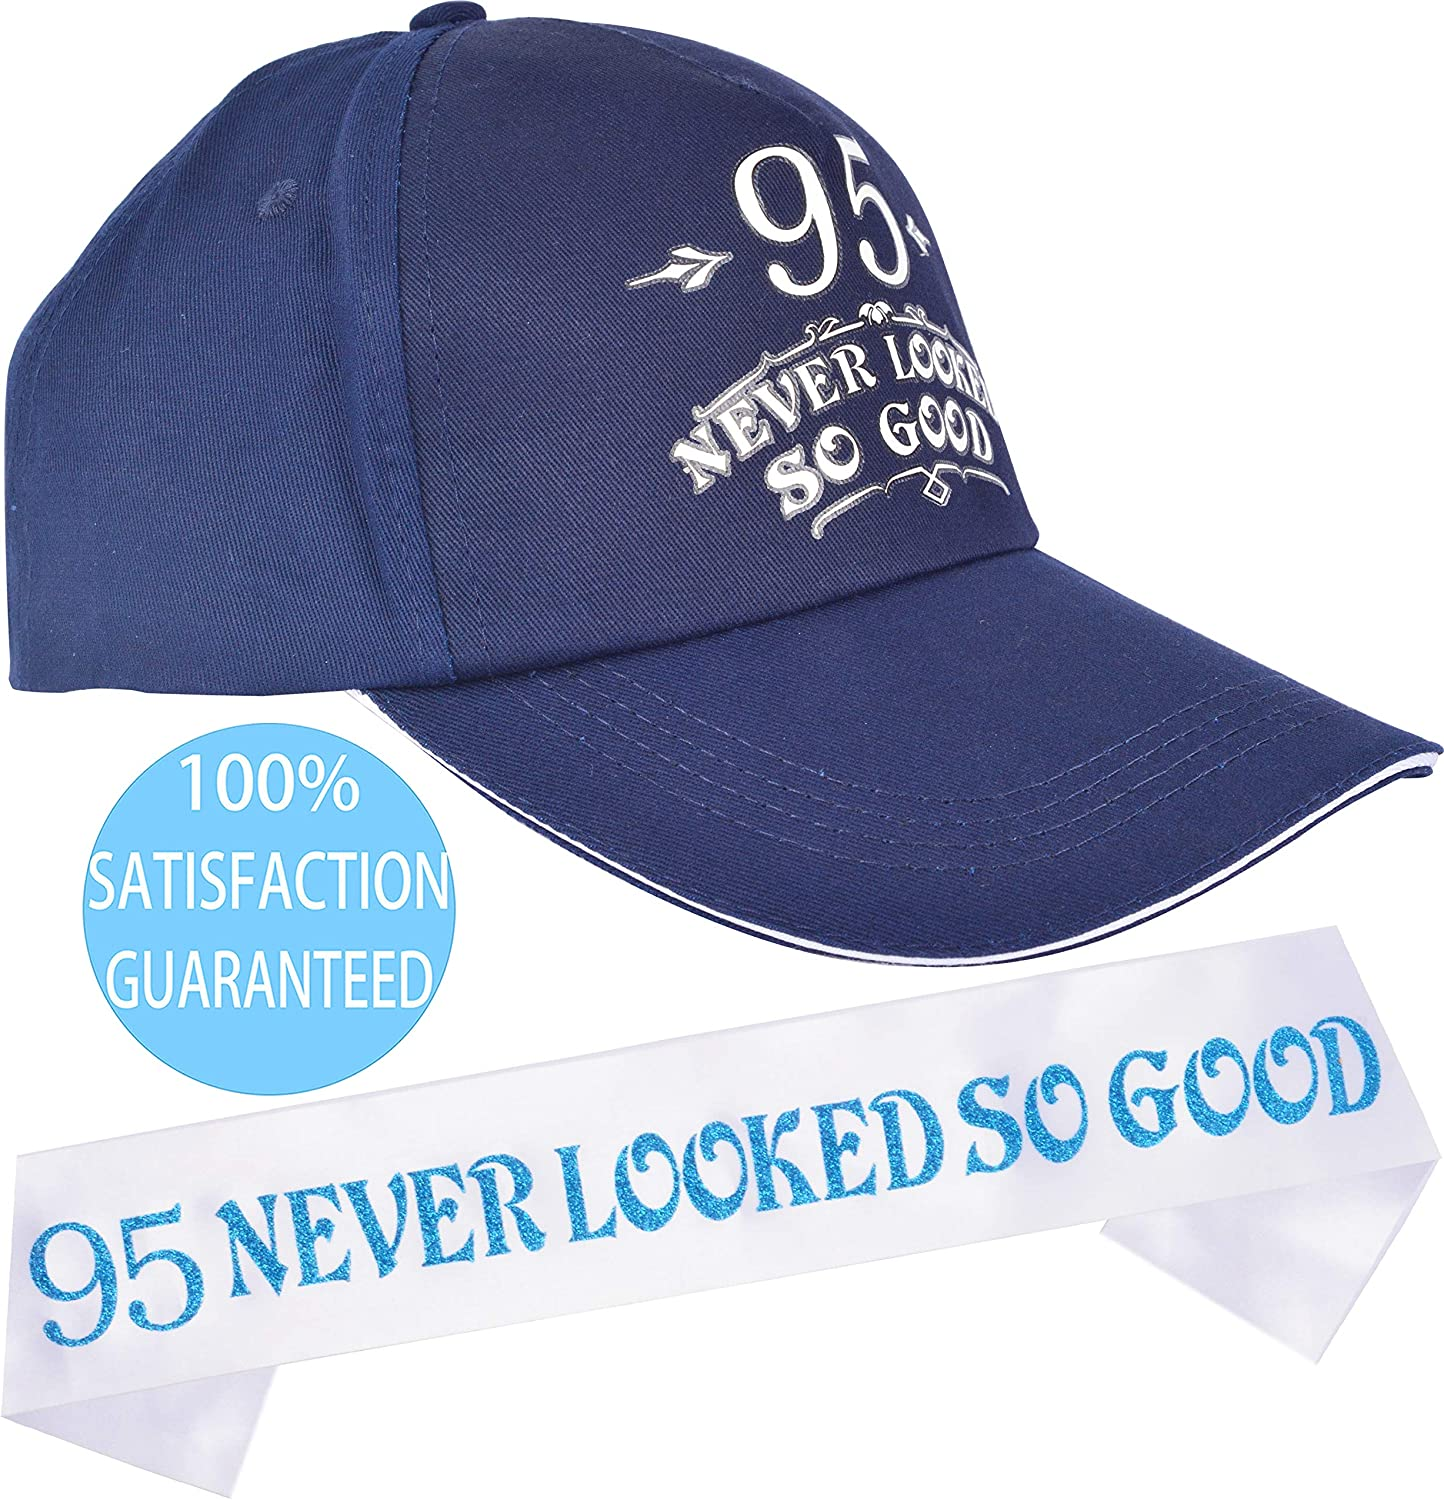 95th Birthday 95th Birthday Gift for Men 95 Never Looked So Good Sash 95th Birthday Caps and Sash Happy 95th Birthday Party Supplies 95th Birthday Party Supplies Gifts and Decorations